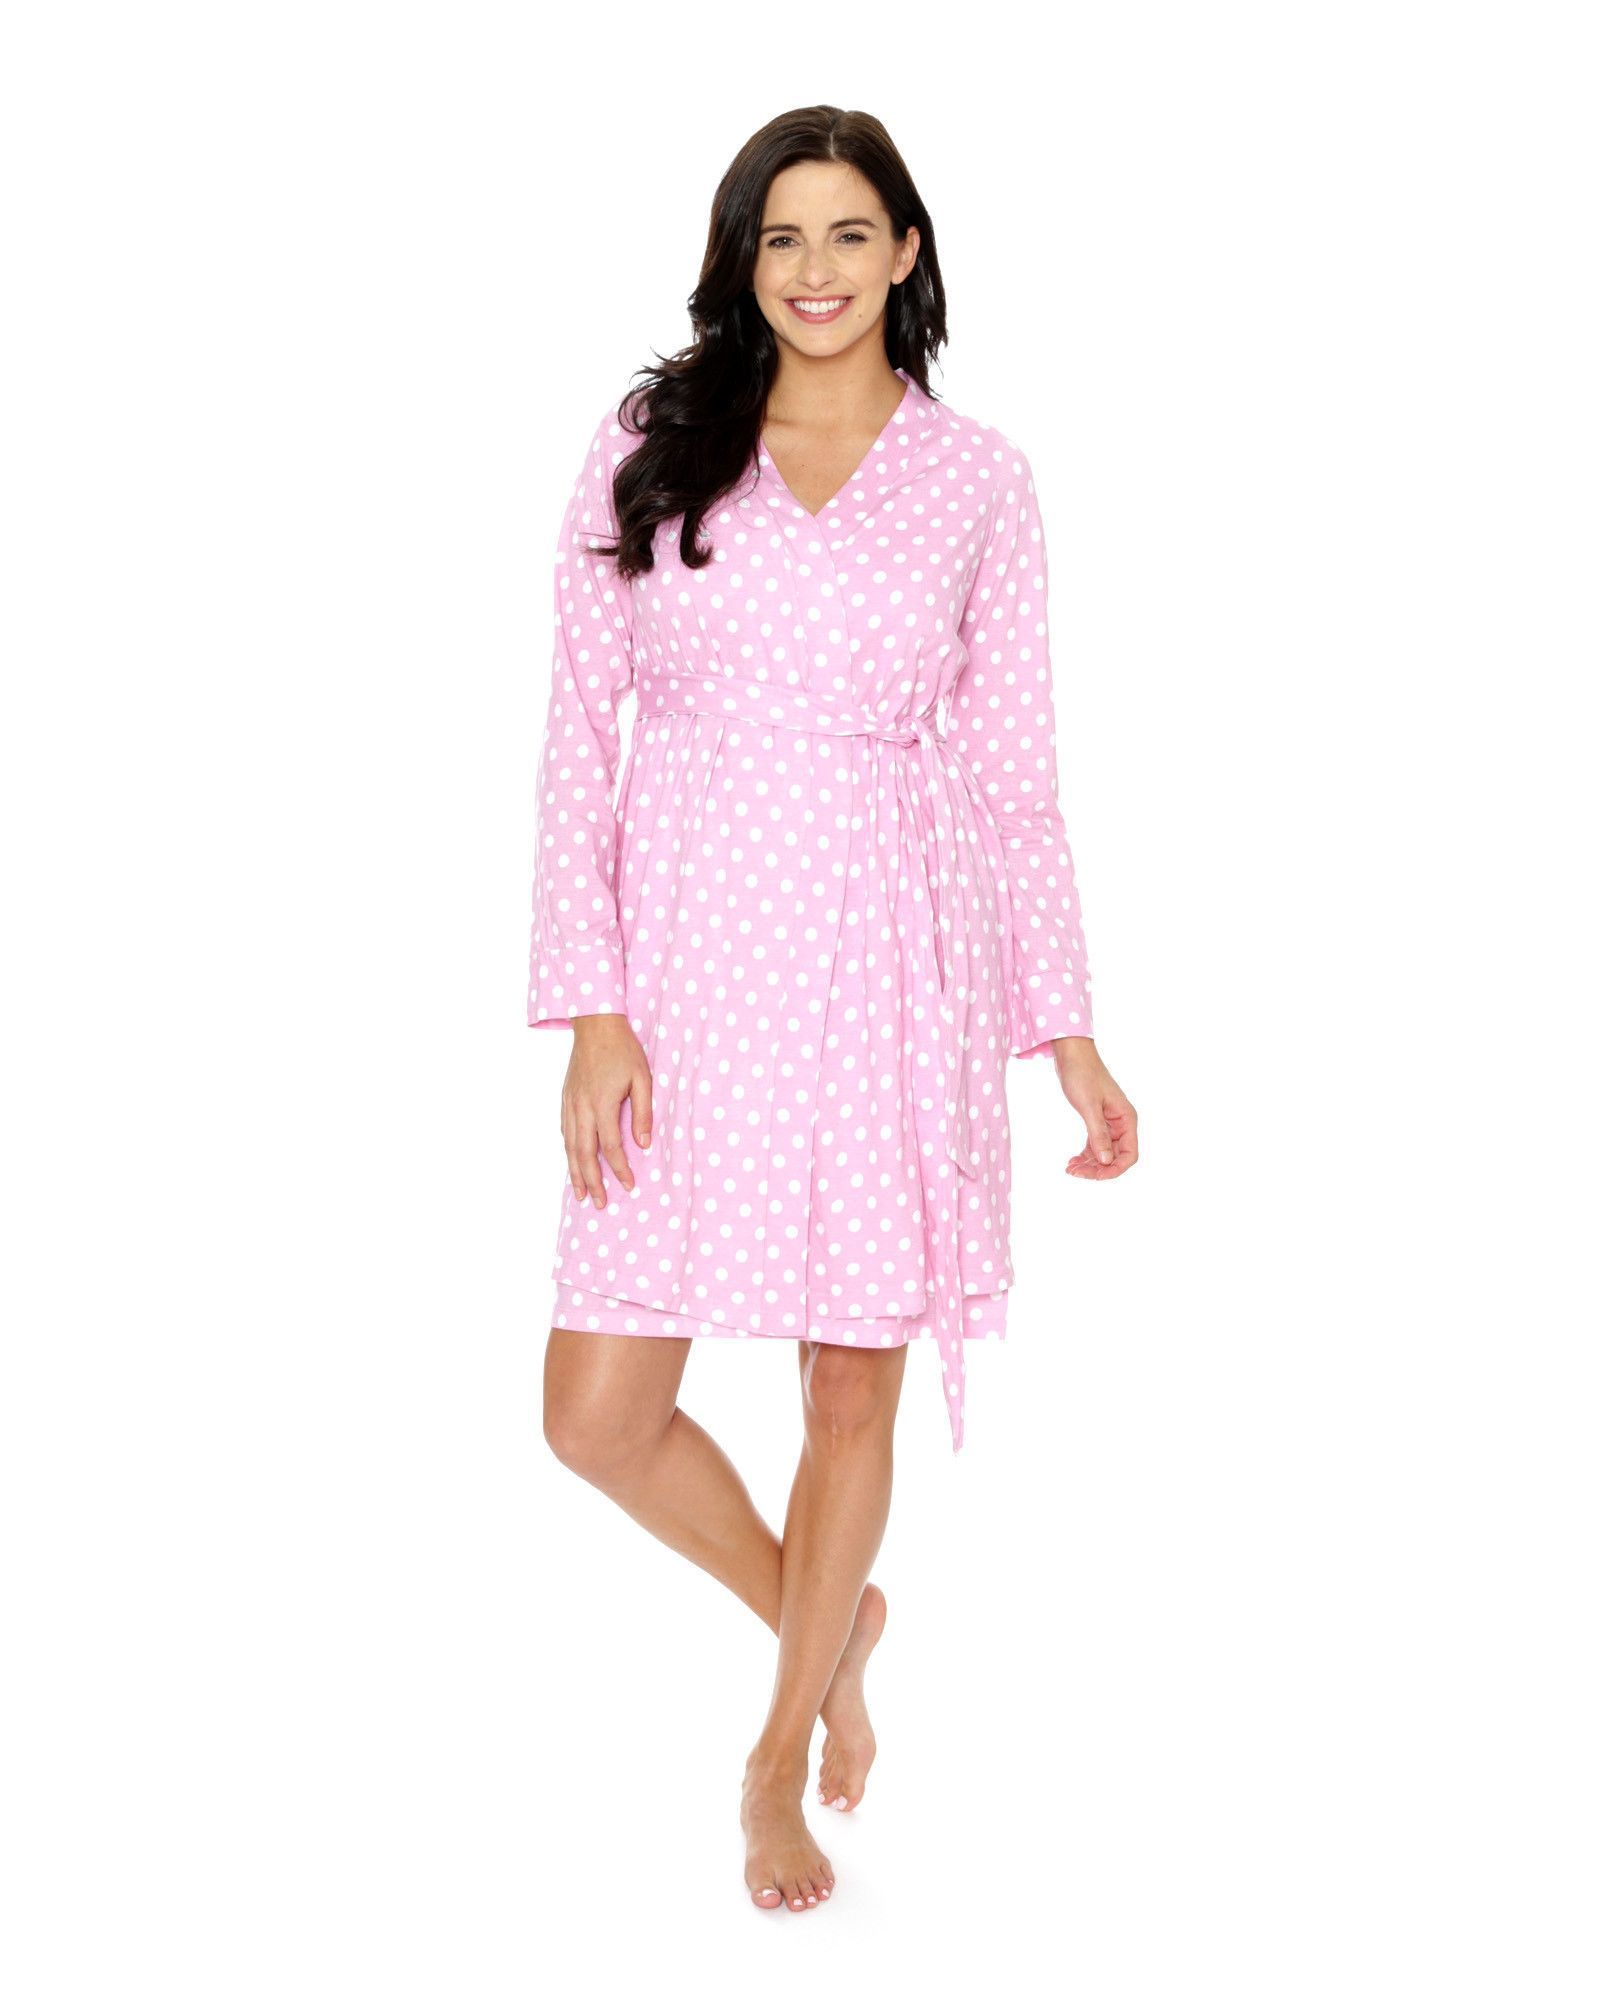 Moms-to-be can always rest easy with Motherhood's comfy maternity sleepwear. Shop maternity gowns, pajamas, robes & sleep bras. Motherhood Maternity.